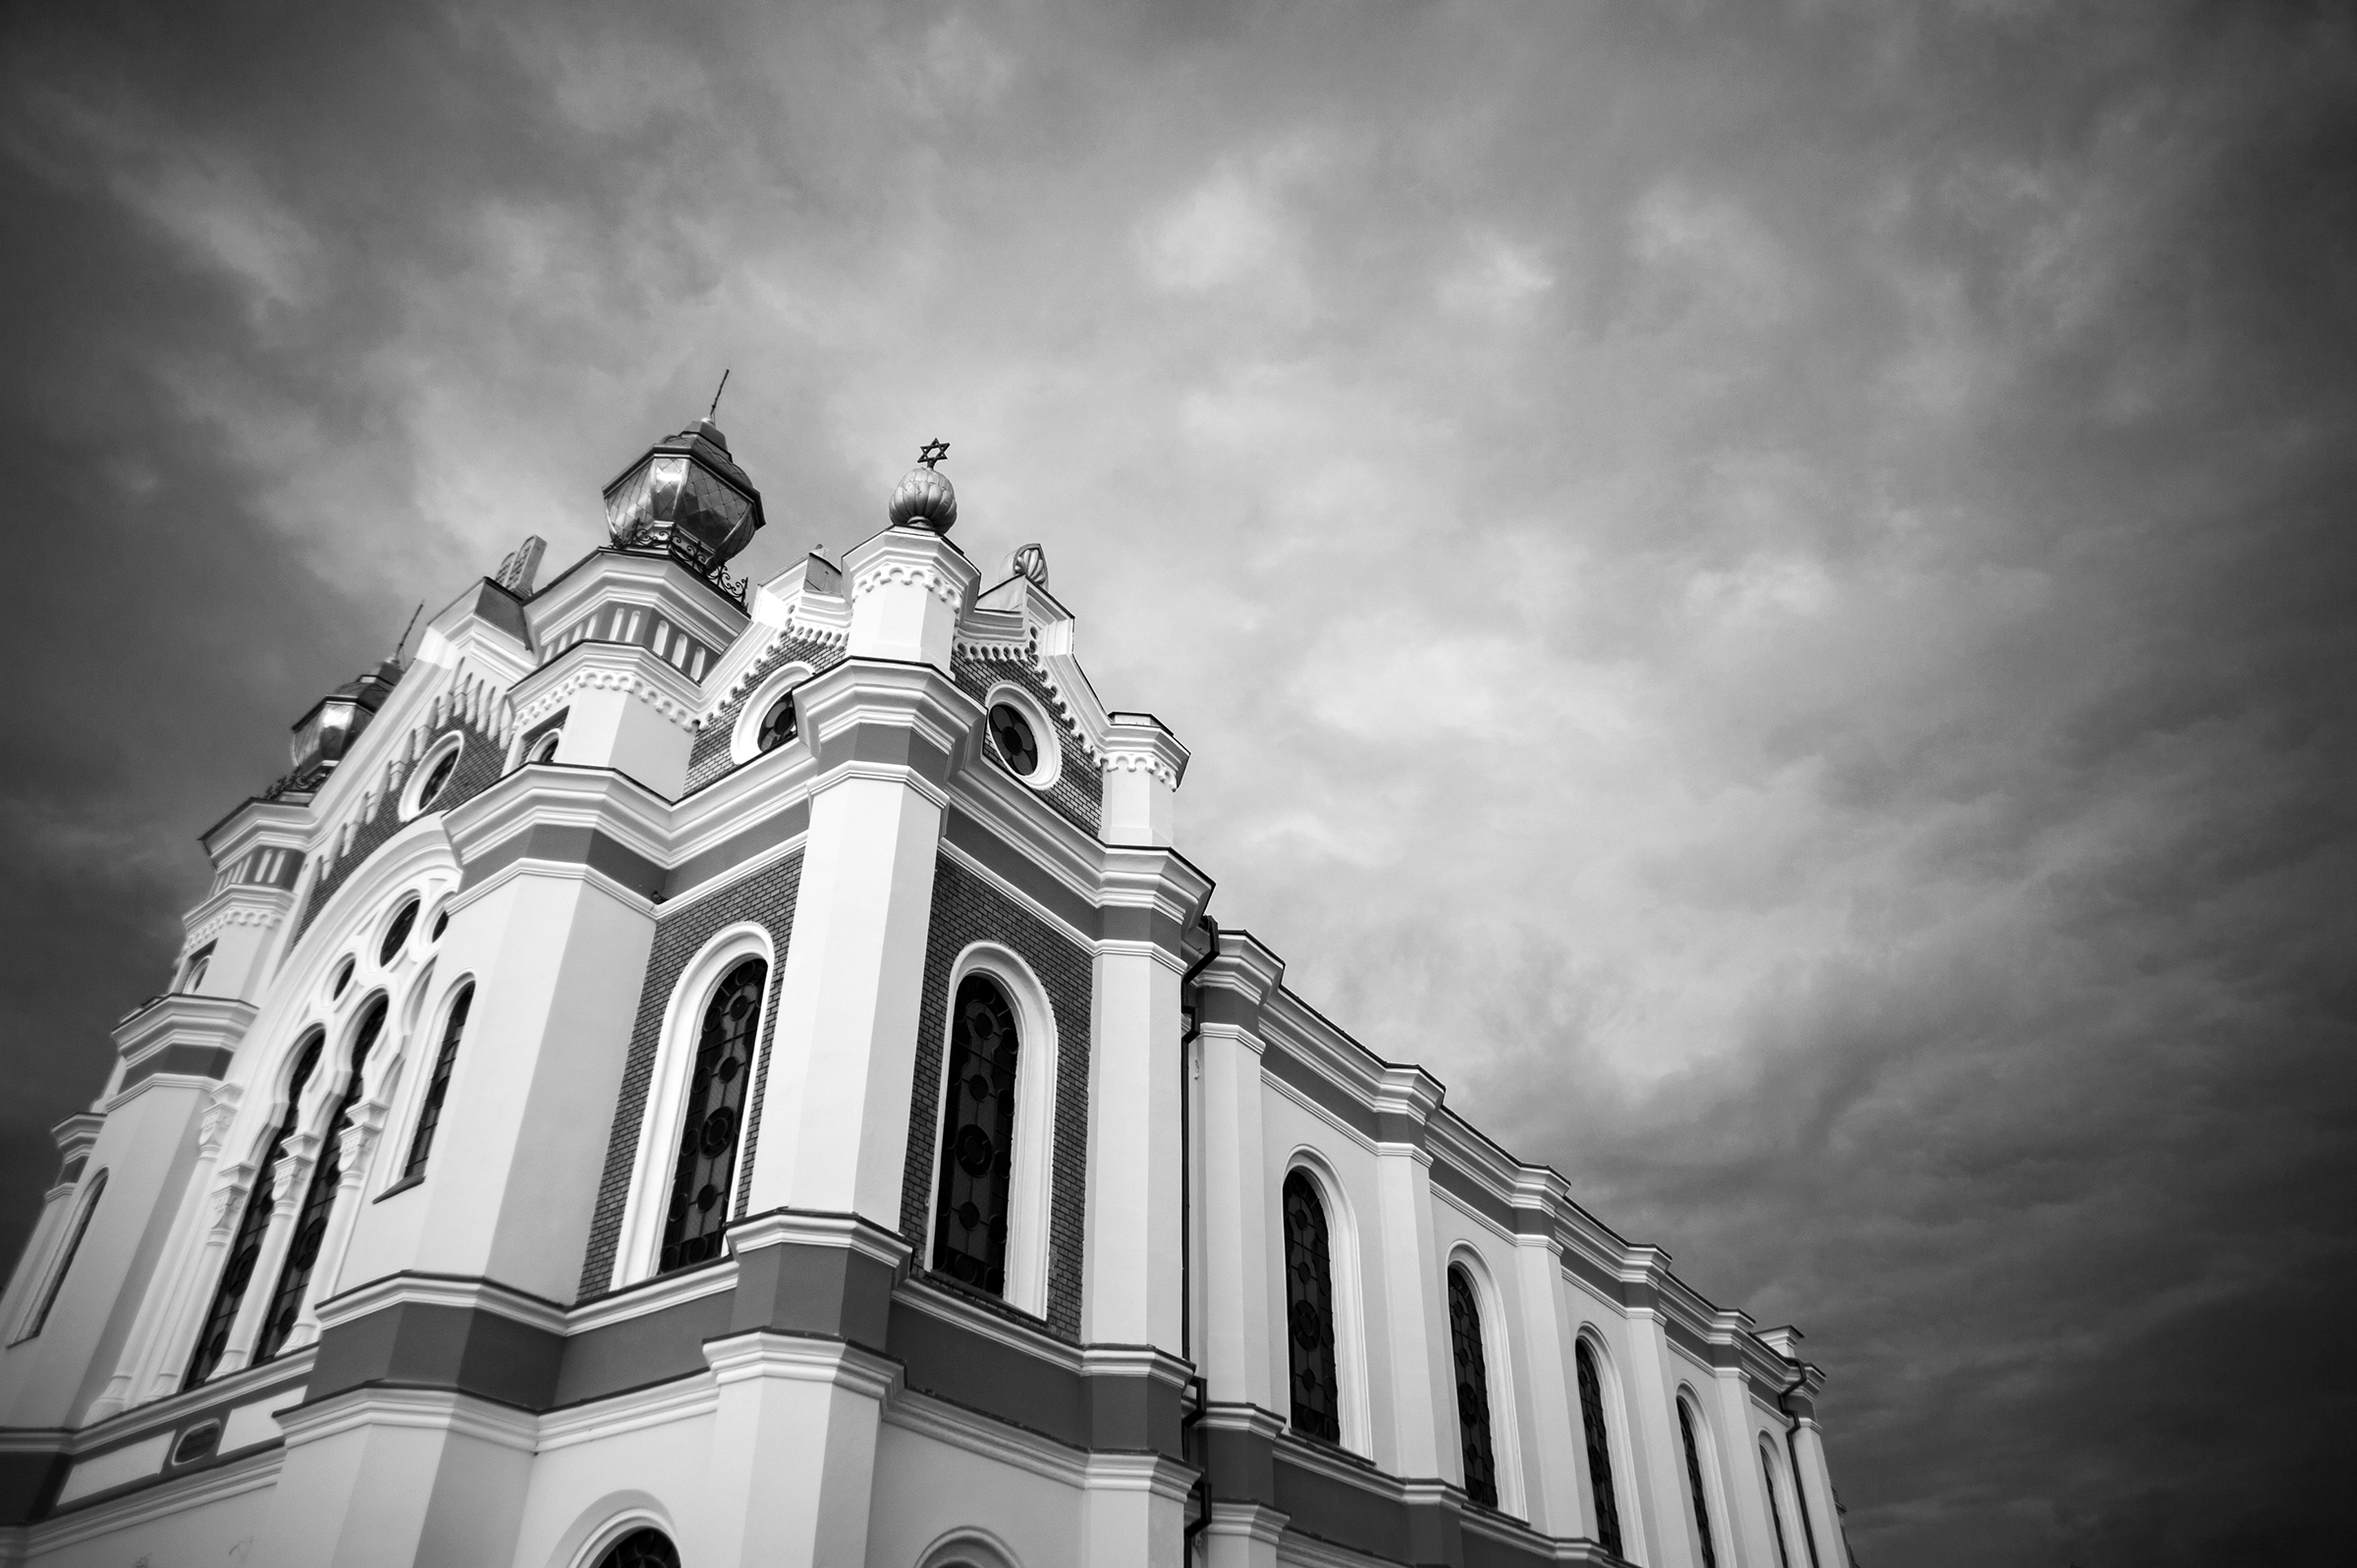 Dark clouds cover the Great Synagogue as a storm rolls in over Oradea, Romania on August 30, 2013. (Photo by Daniel Owen/GroundTruth)